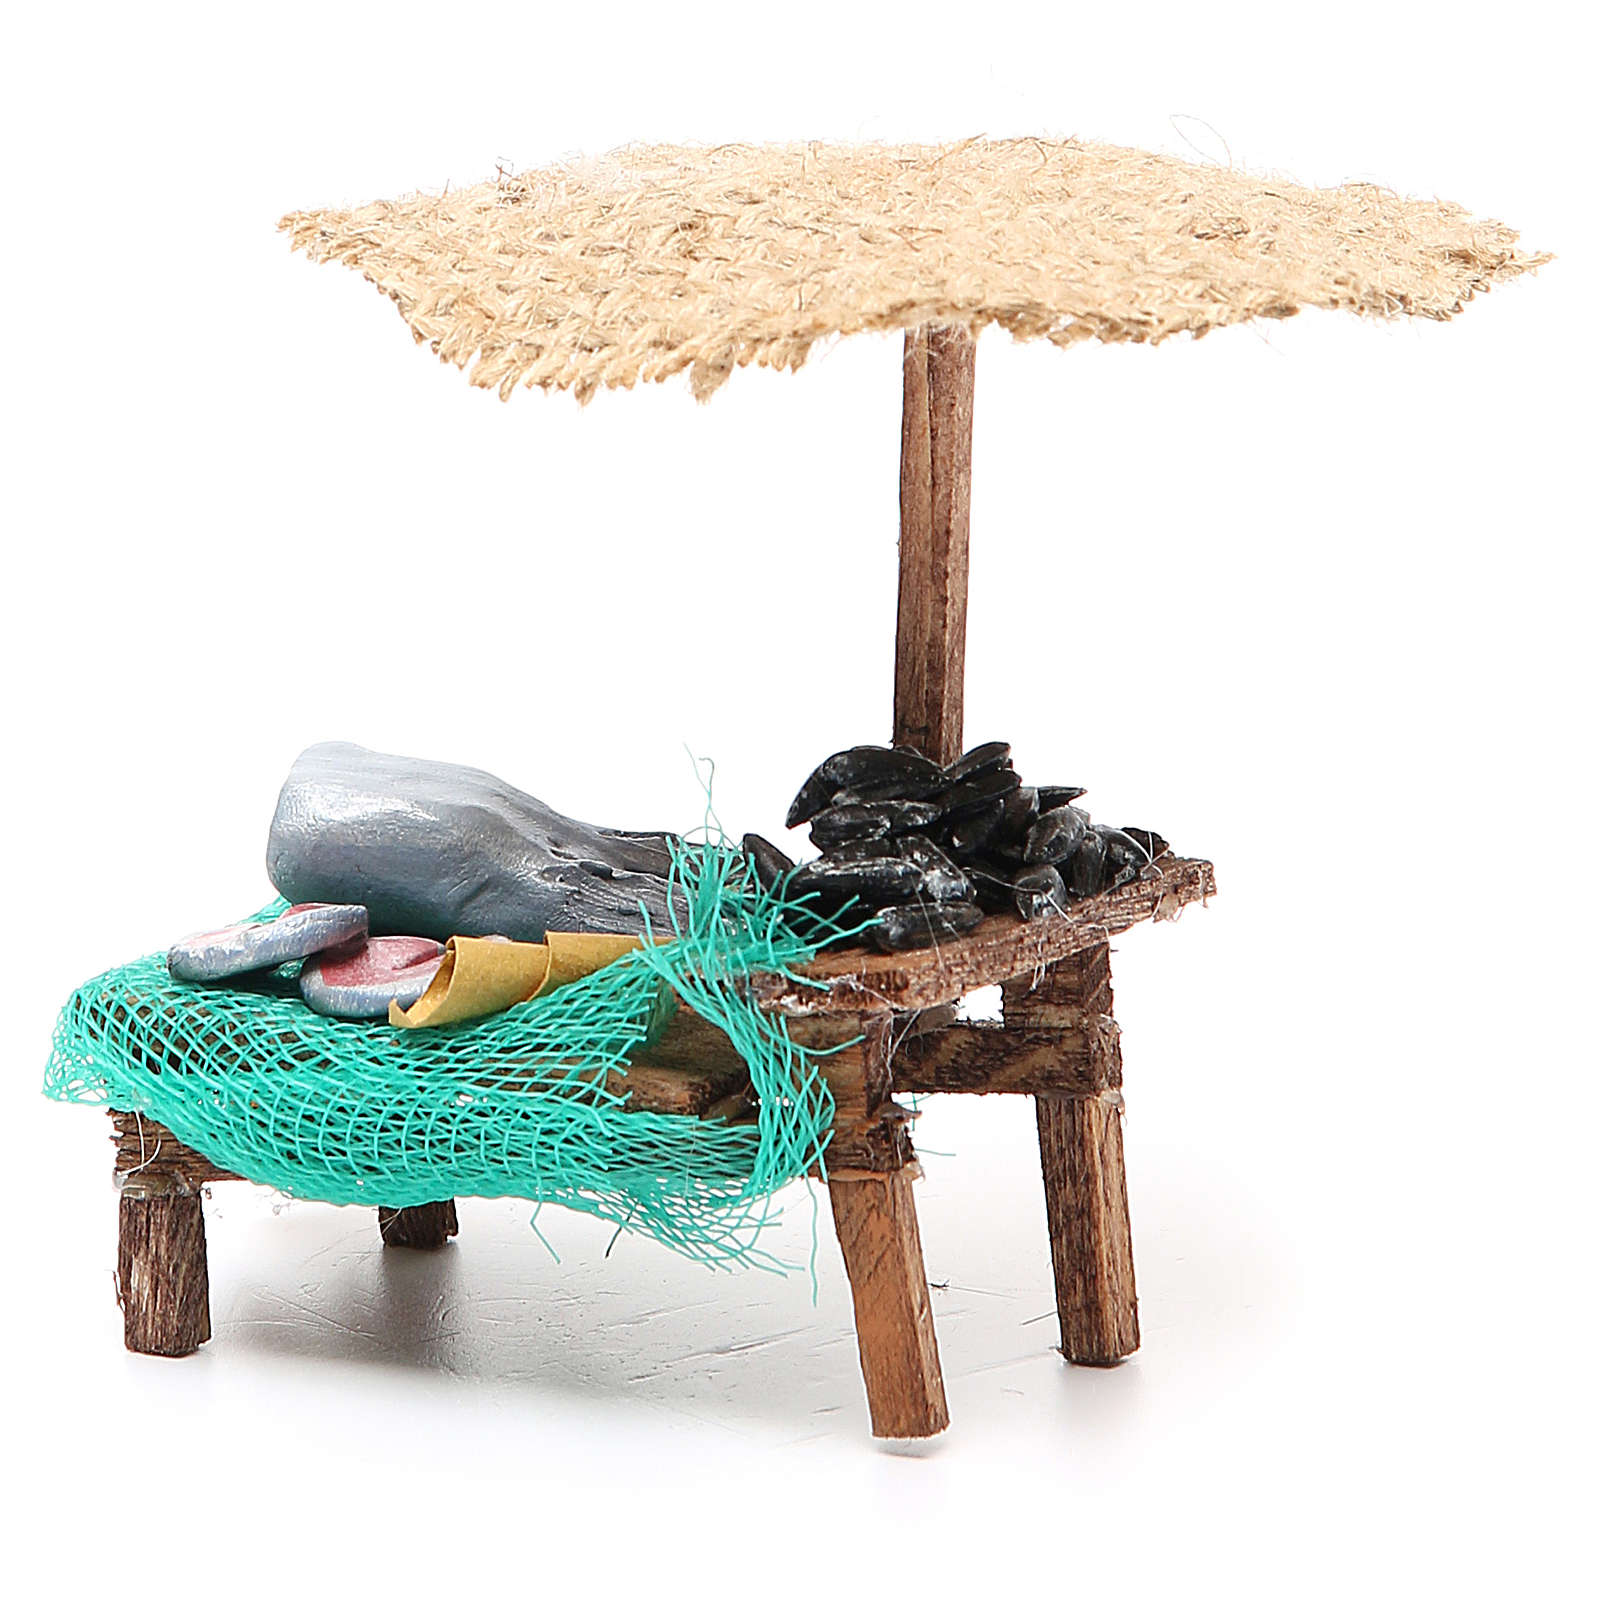 Workshop nativity with beach umbrella, fish and mussels 12x10x12cm 4